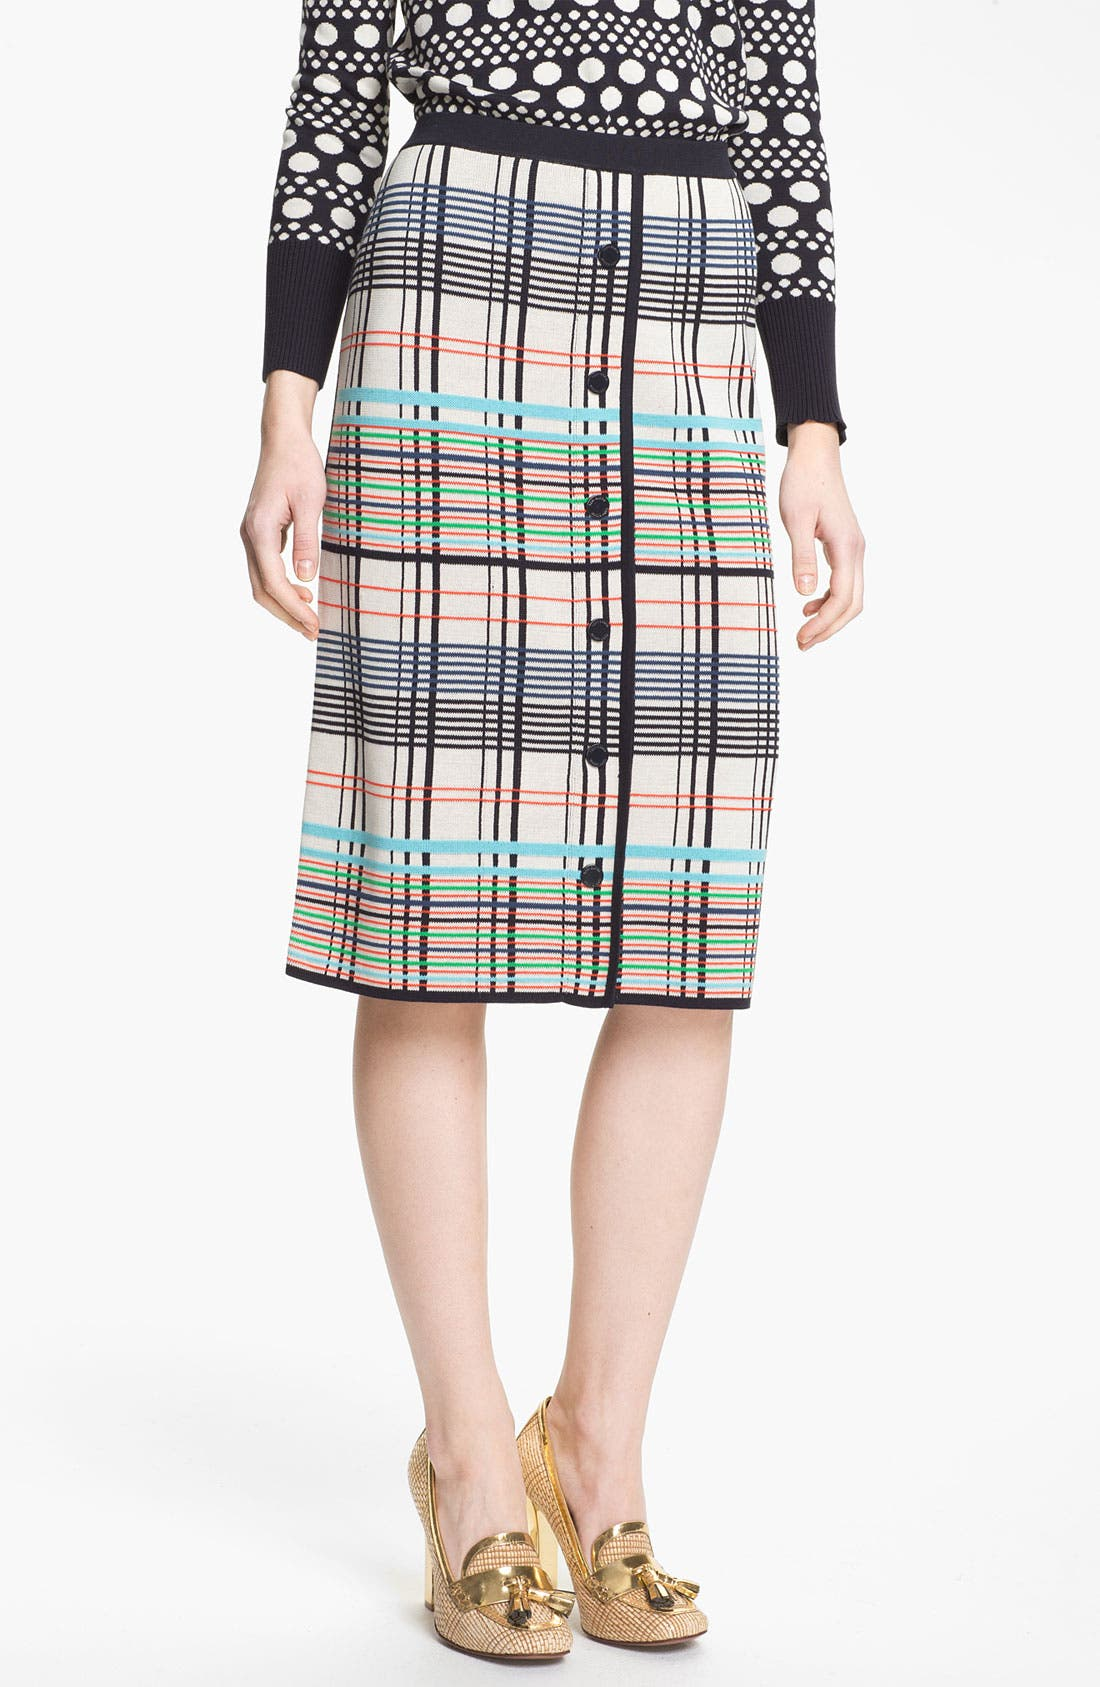 Main Image - Tory Burch 'Adalyn' Skirt